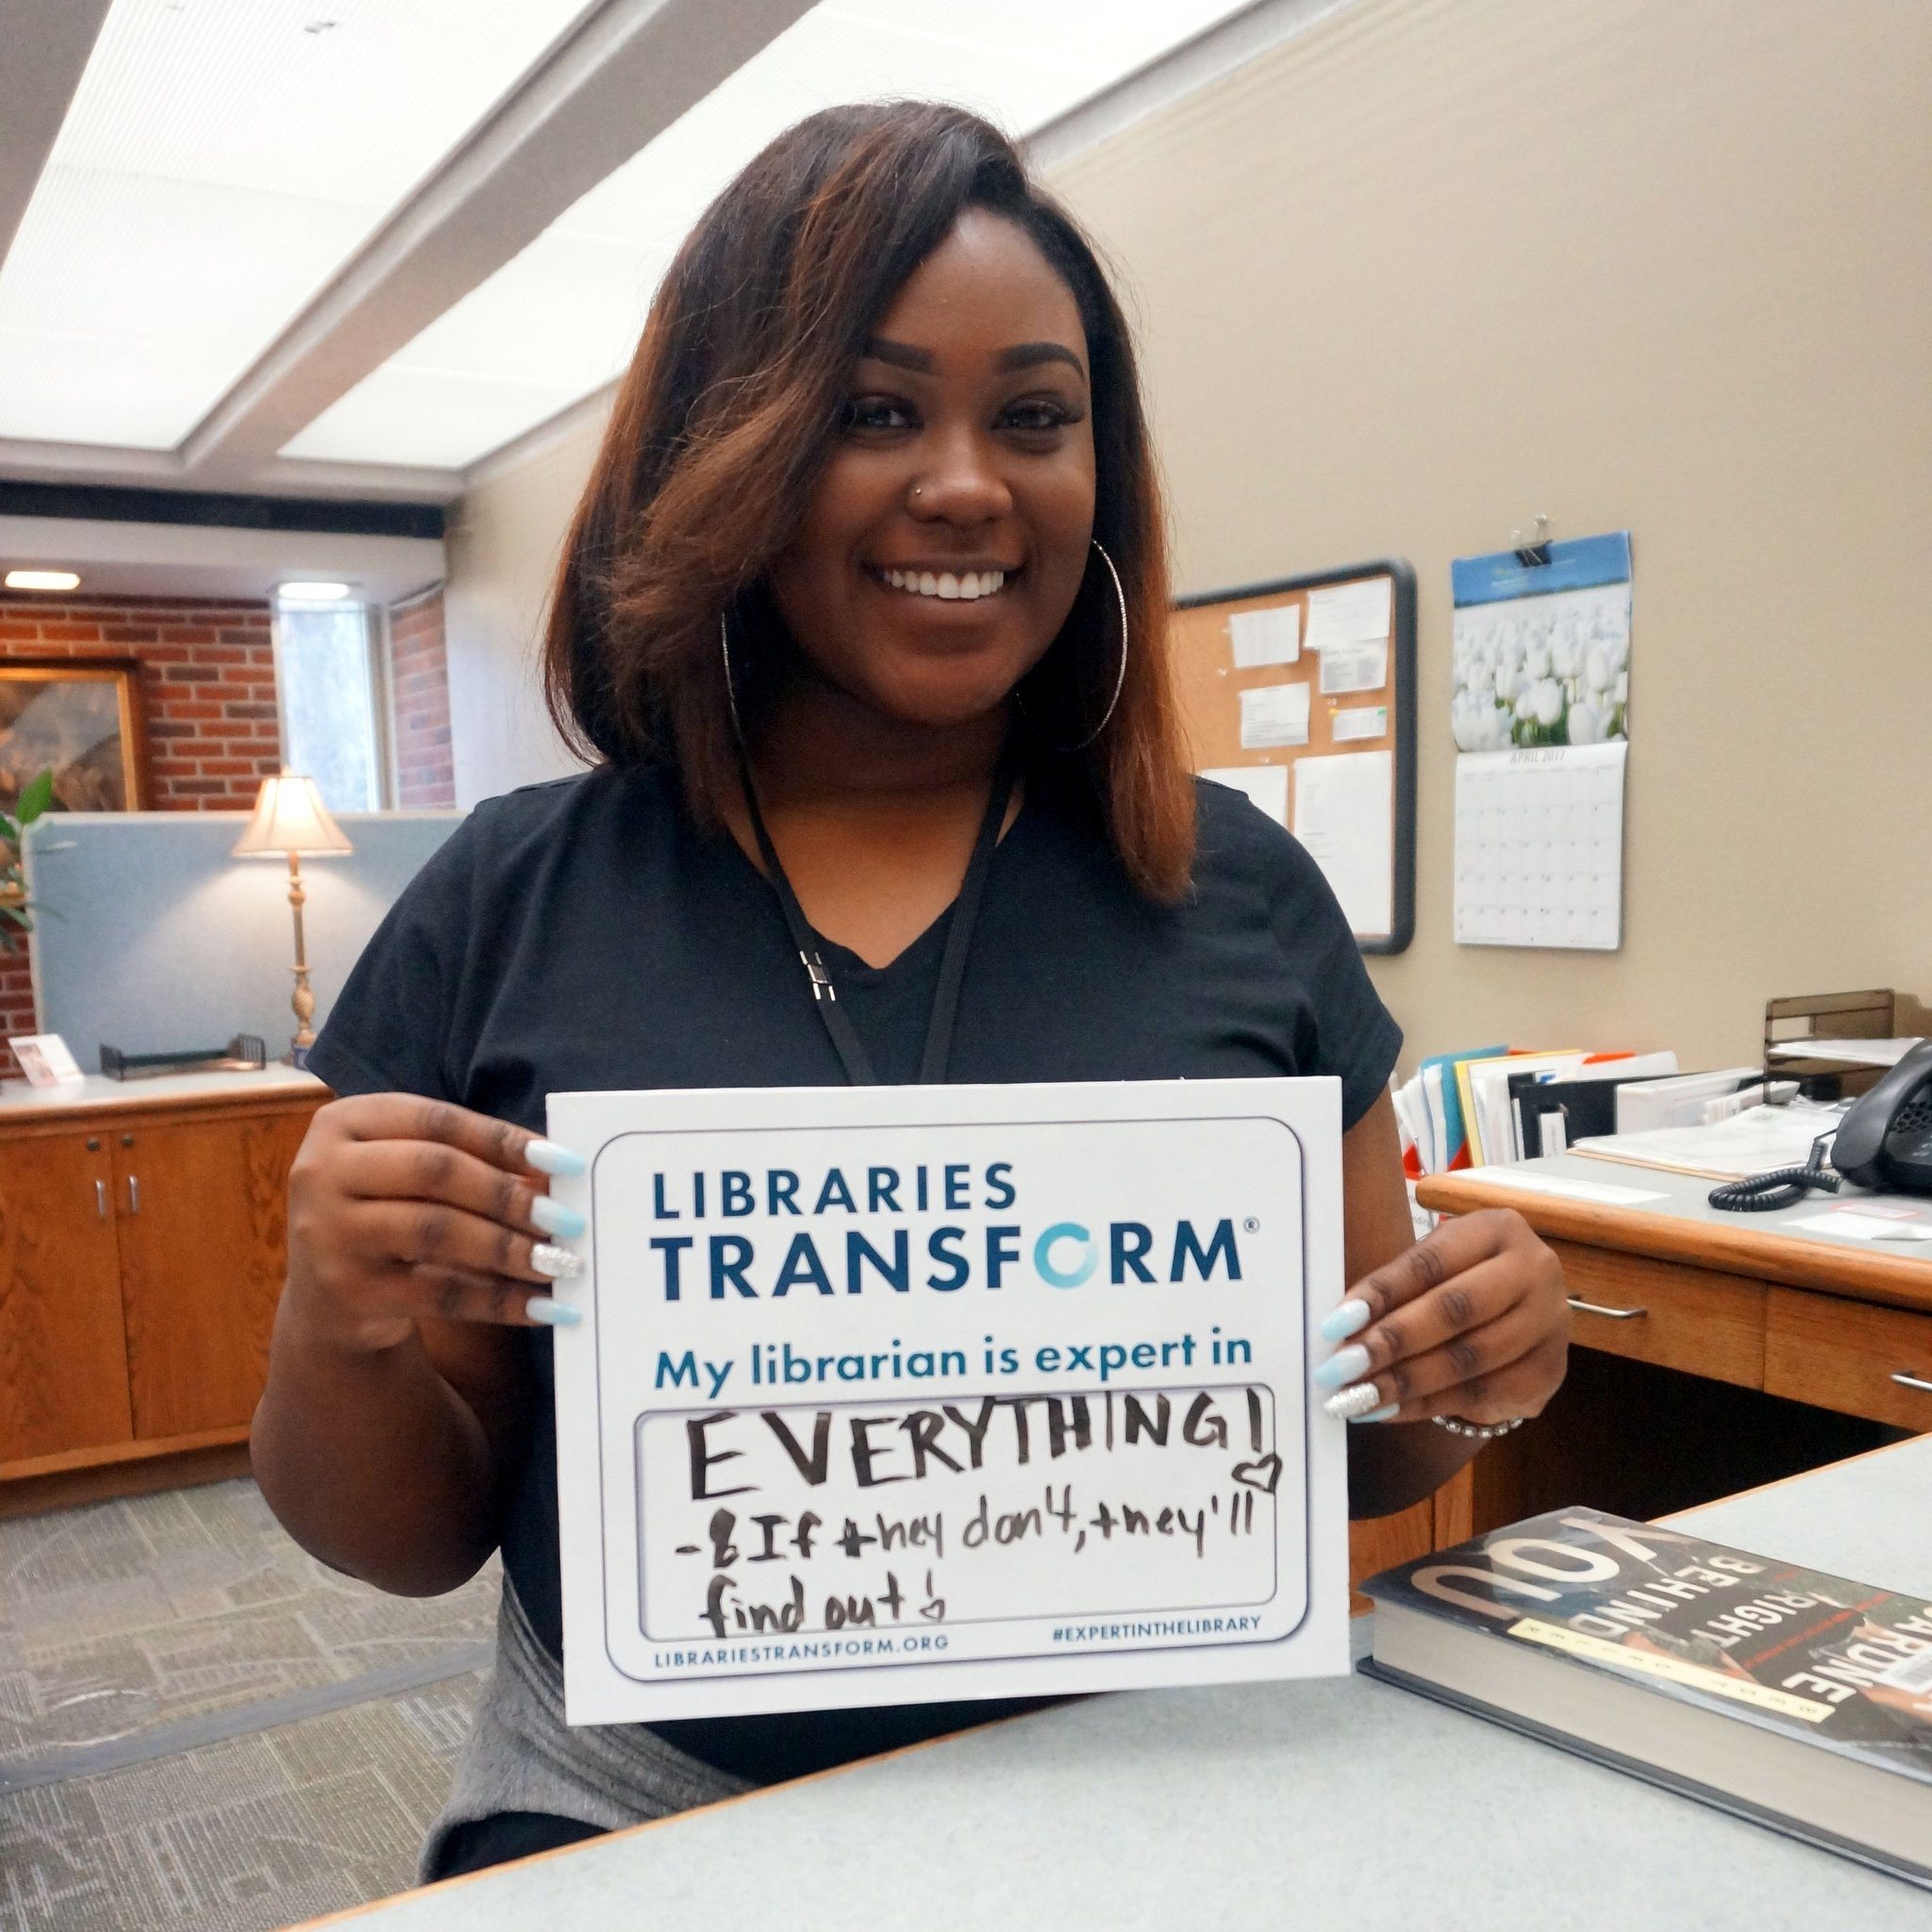 Ayanna hit the nail on the head! Librarians can help you find information to help you become an expert in ANYTHING! #expertinthelibrary https://t.co/YQqrSnig0C